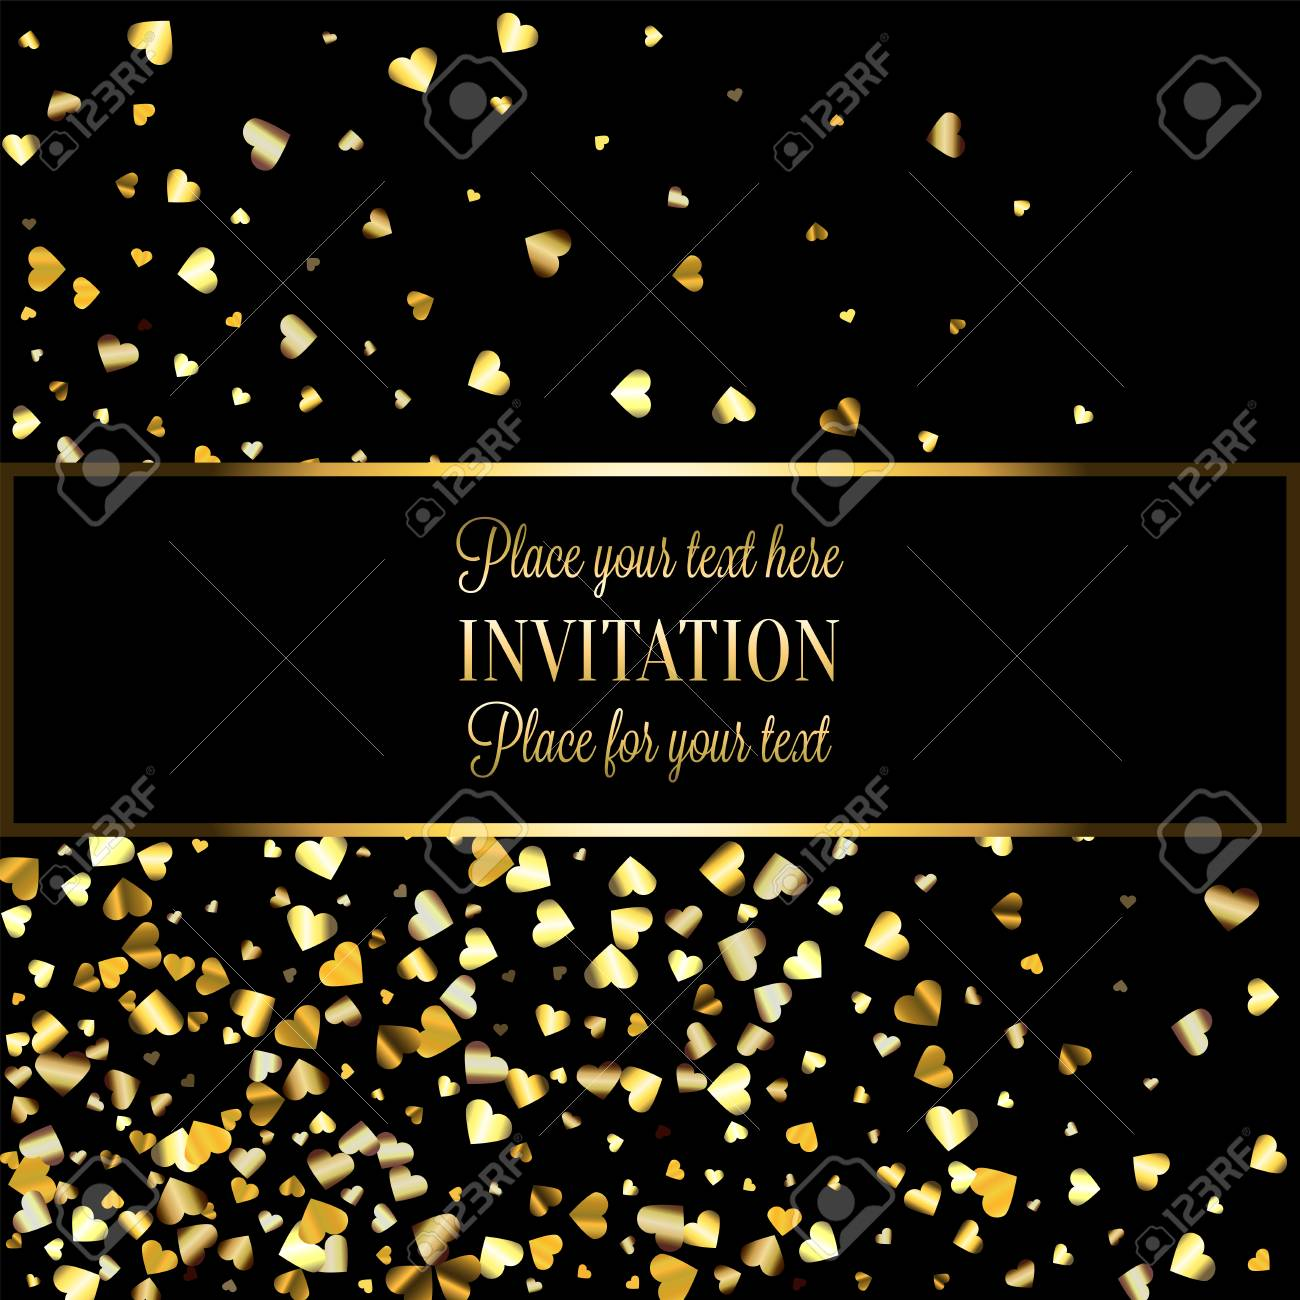 Gold Gradient Hearts Random Confetti Invitation Card Template